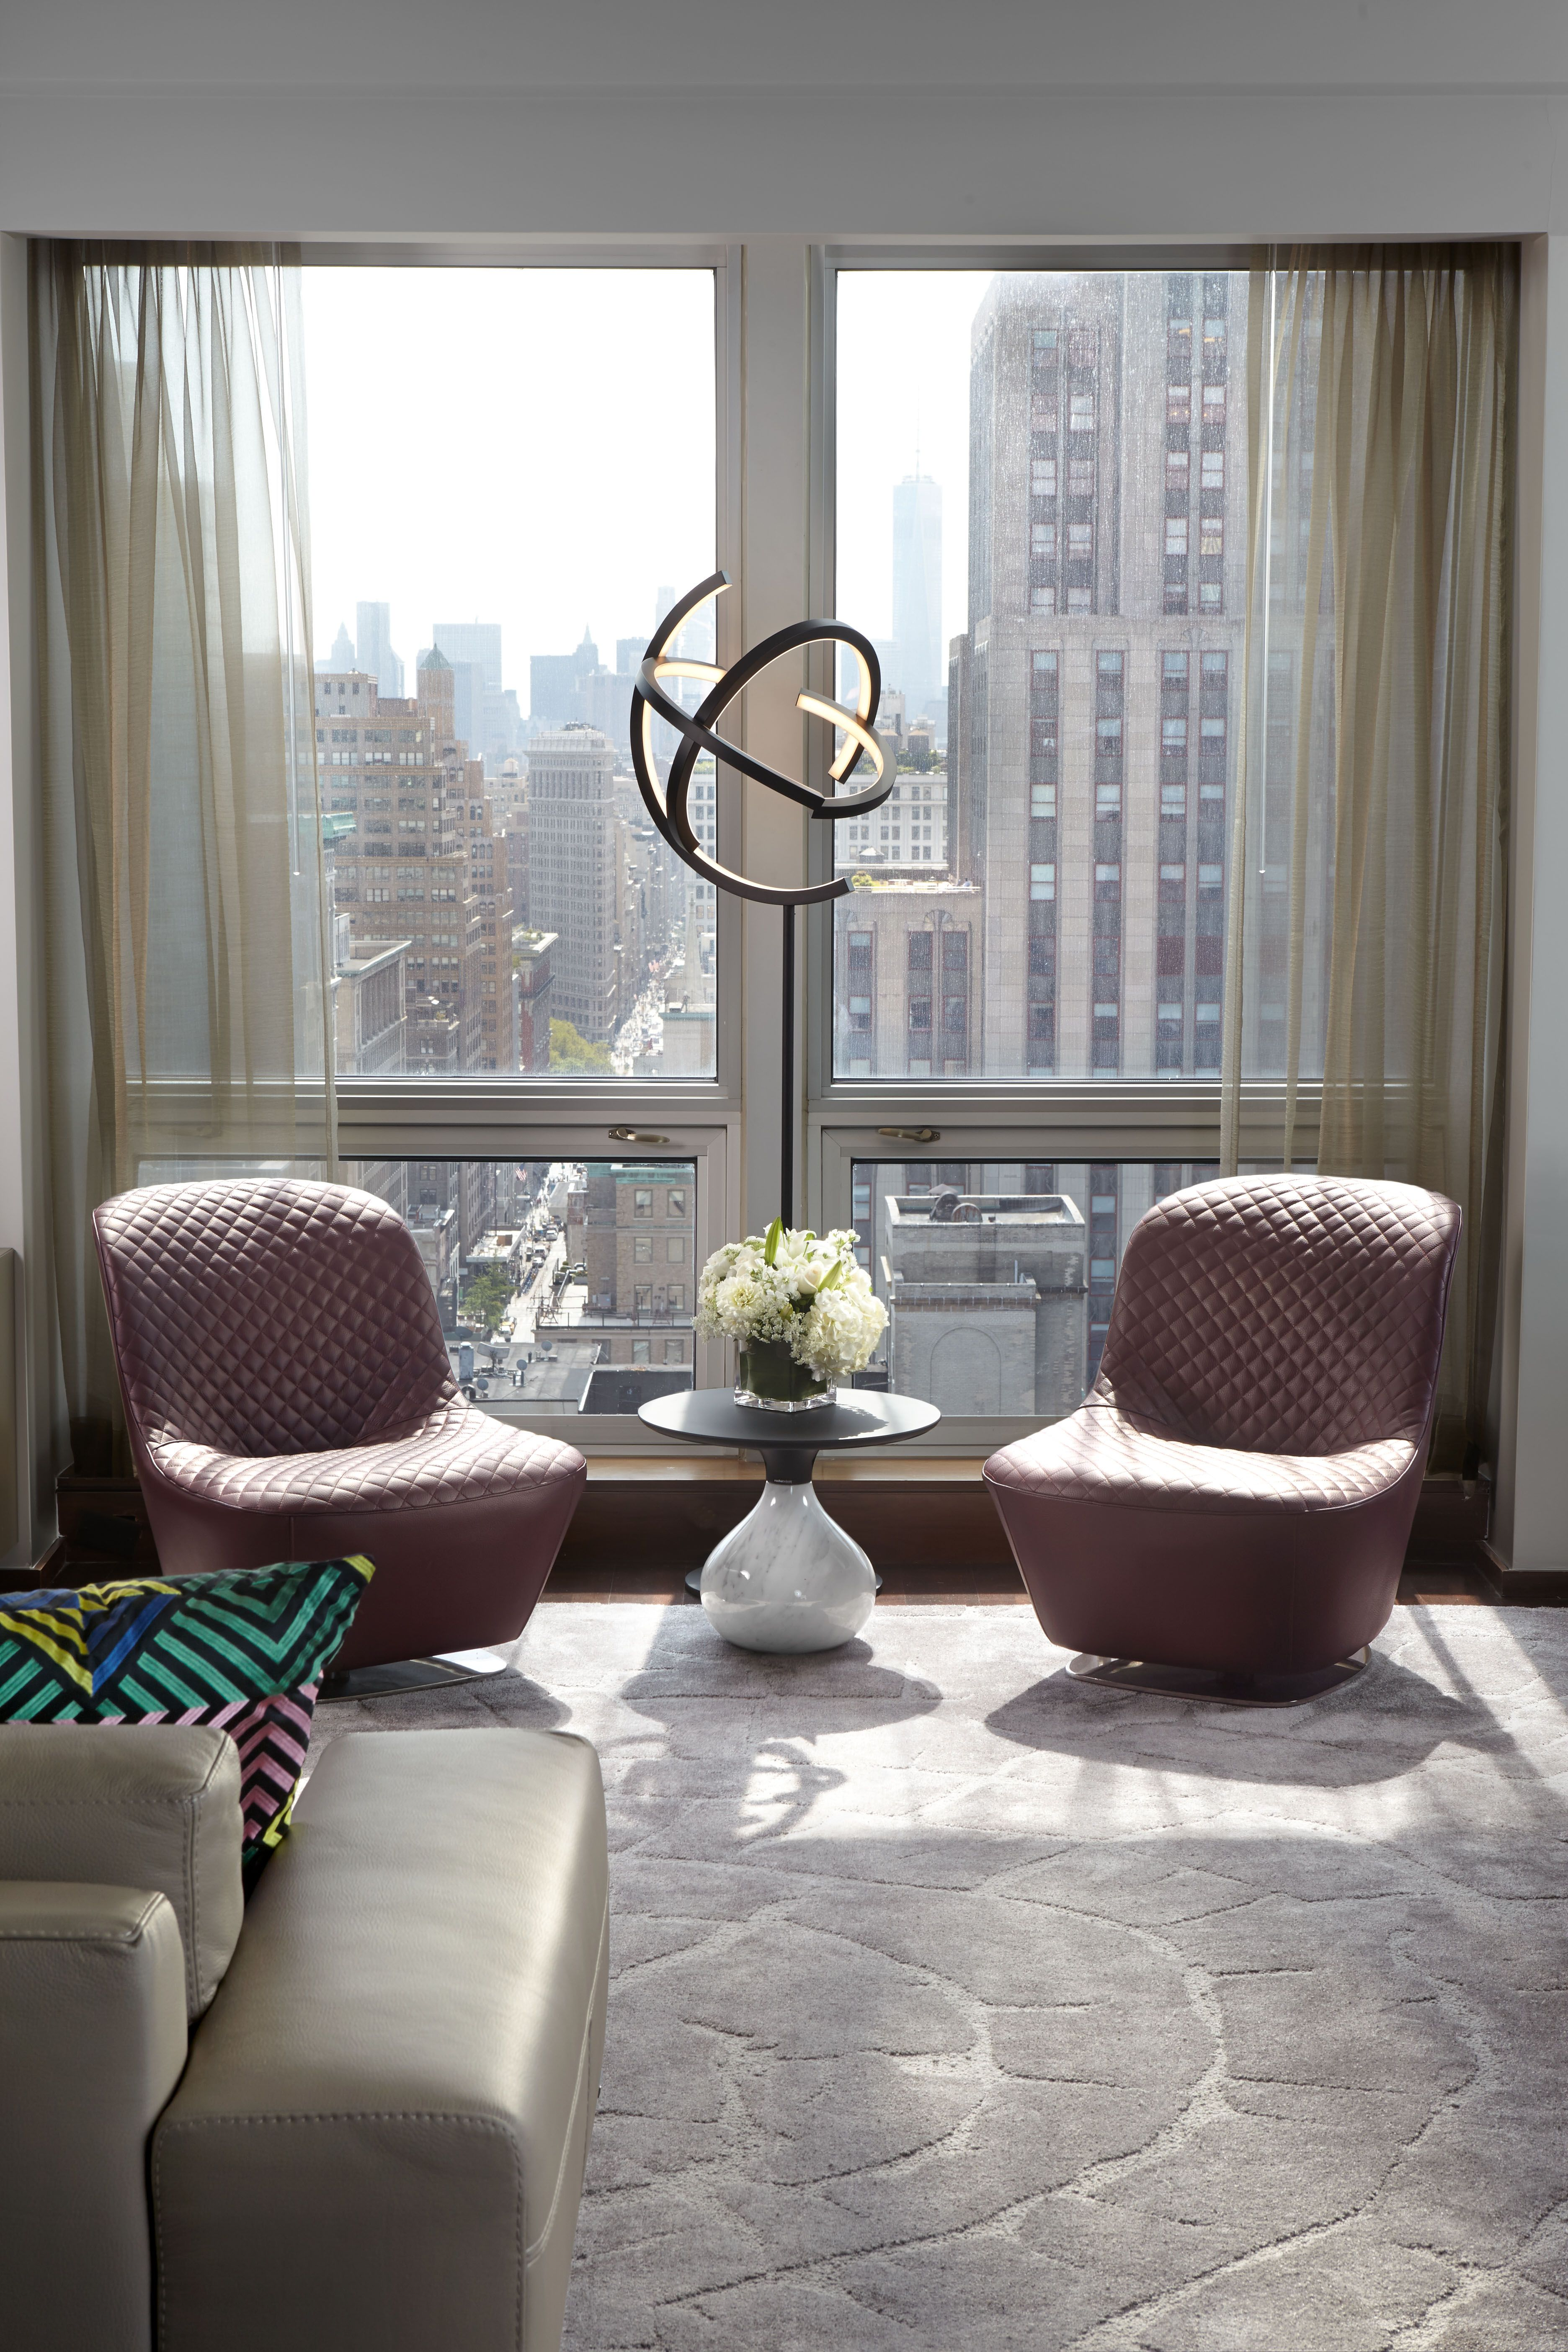 Roche Bobois Langham Place Hotel on 5th Avenue New York